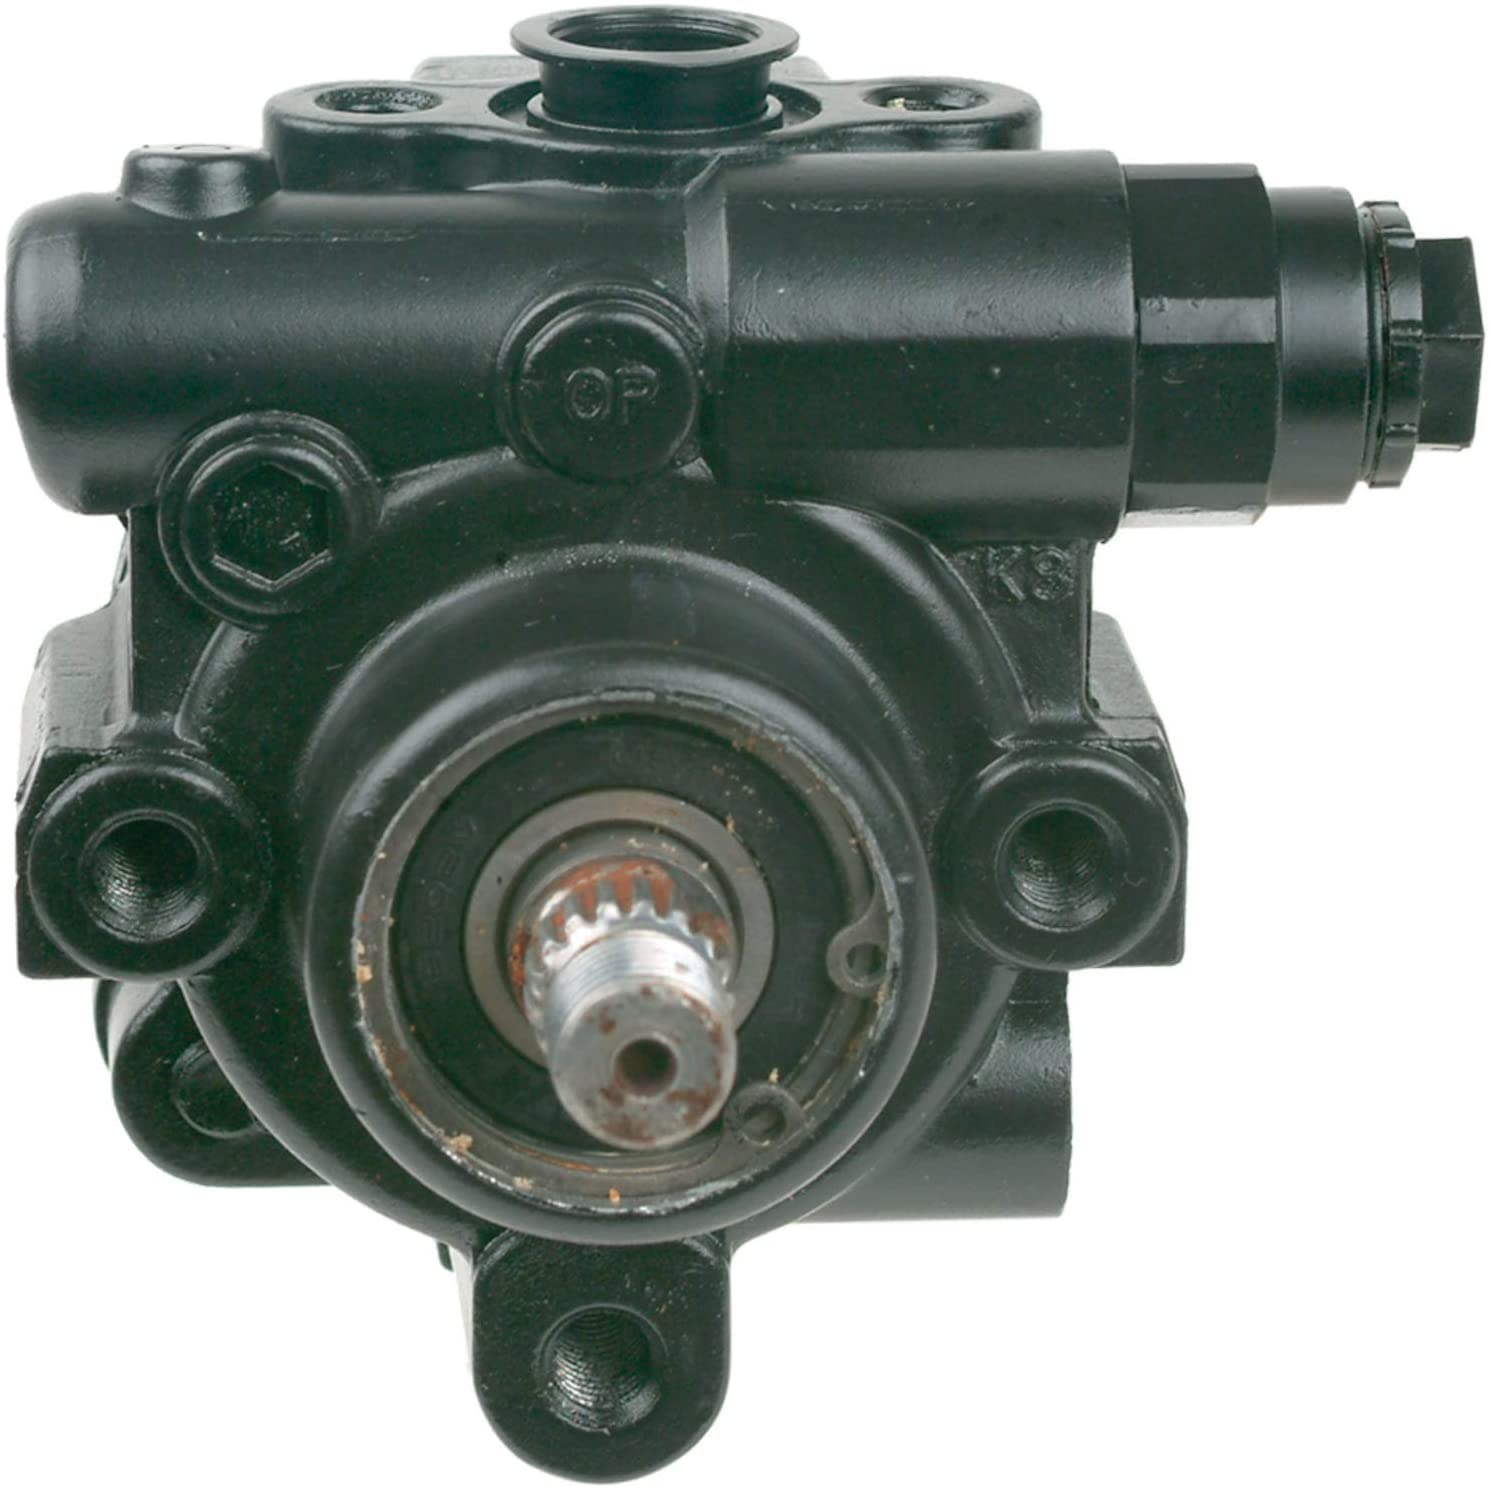 Cardone 21-5271 Remanufactured Import Power Steering Pump